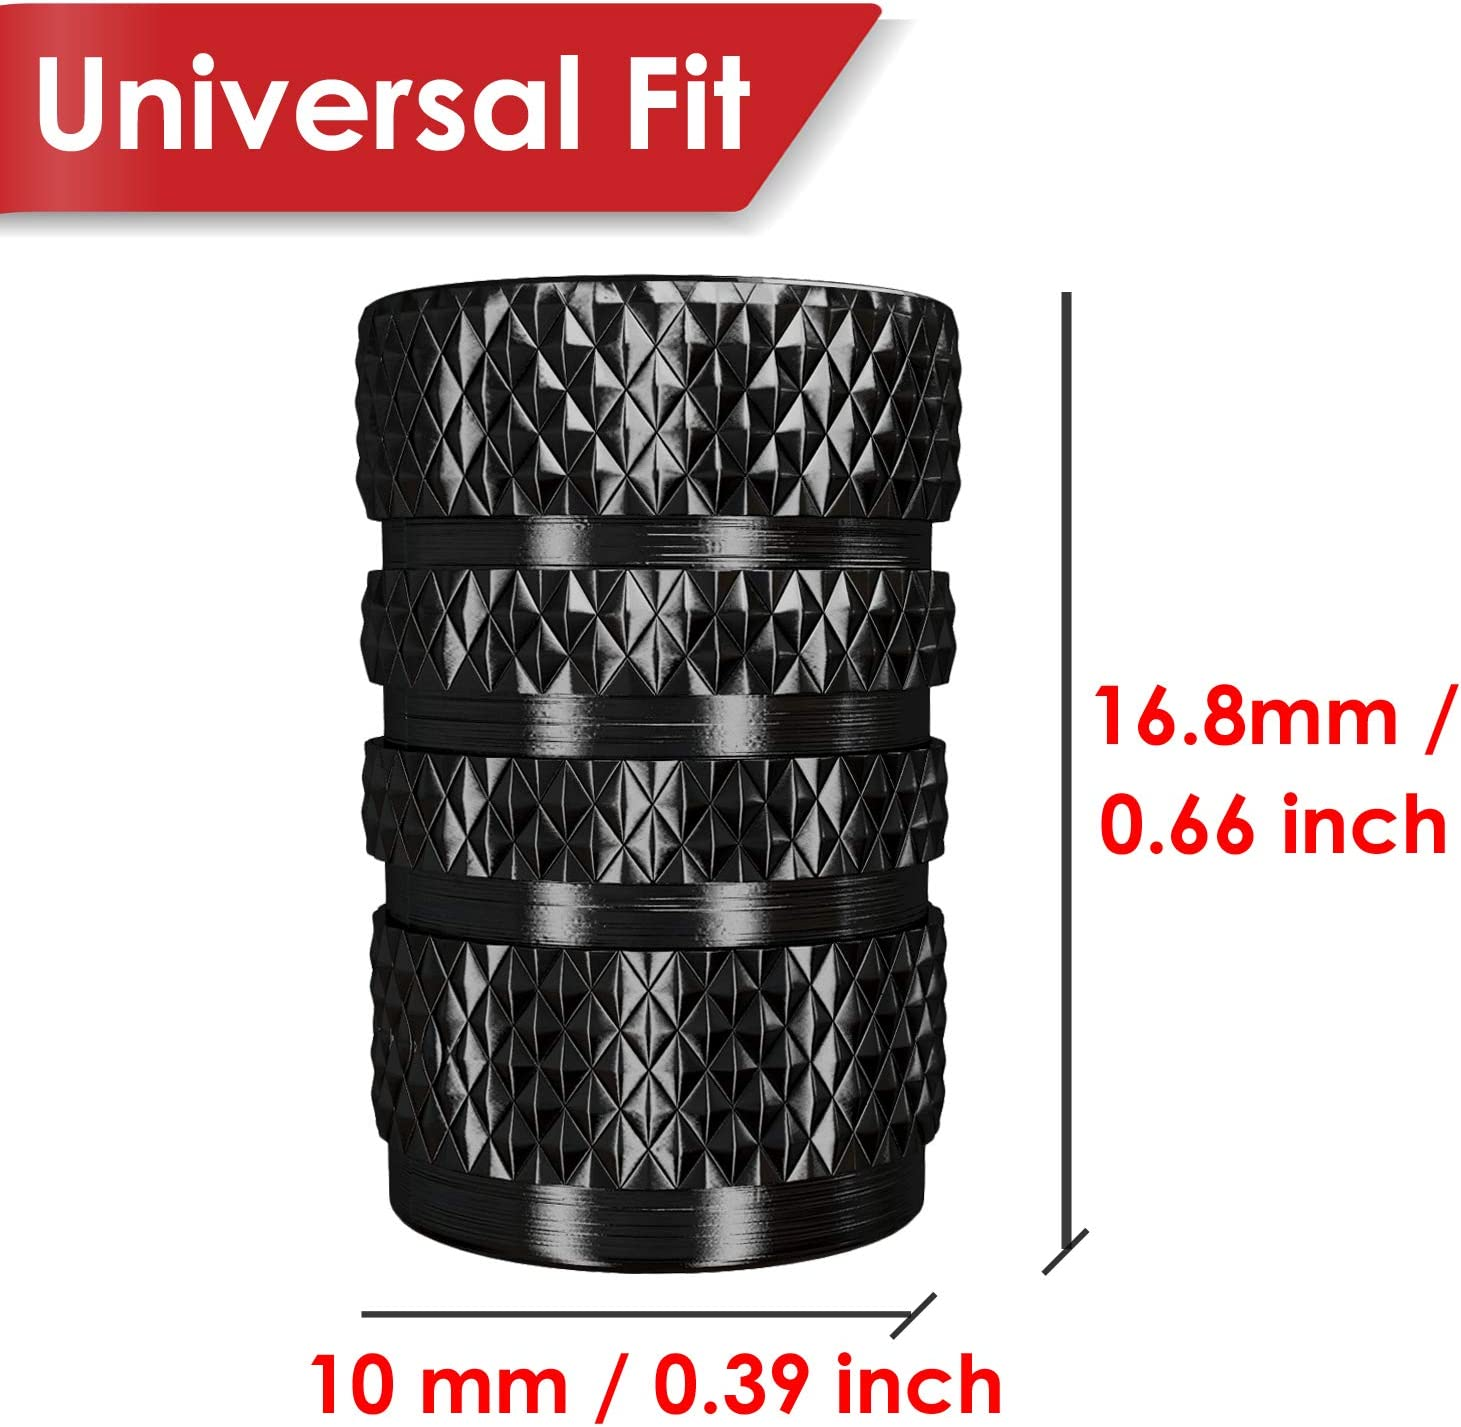 12 Pack SUVs Metal with Rubber Ring Silver Motorcycles Metal Trucks SAMIKIVA Aluminum Tire Valve Stem Caps Dust Proof Cover Universal fit for Cars 12 Pack Bike and Bicycle